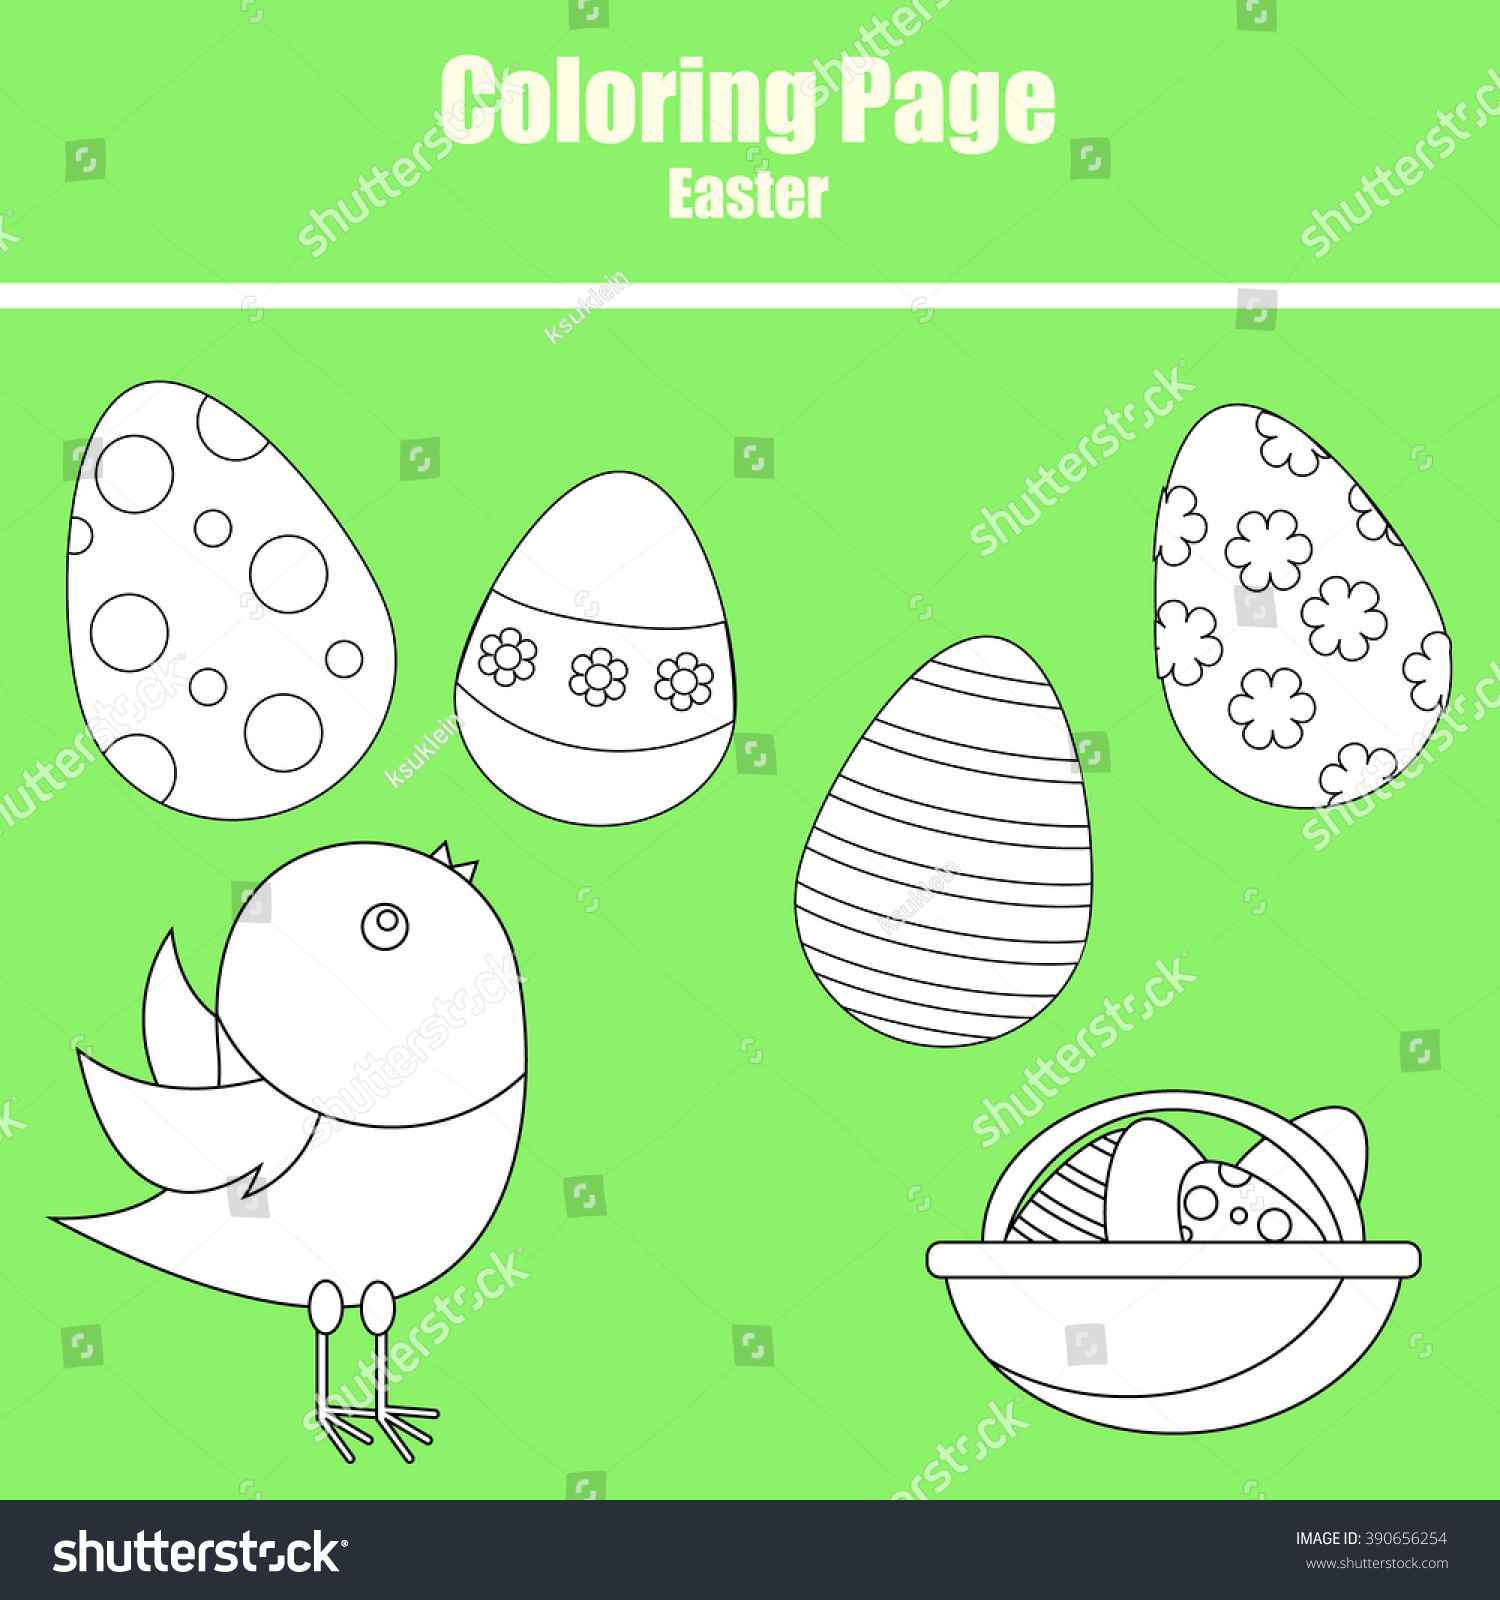 Coloring Page Children Easter Scene Chicken Stock Vector HD (Royalty ...